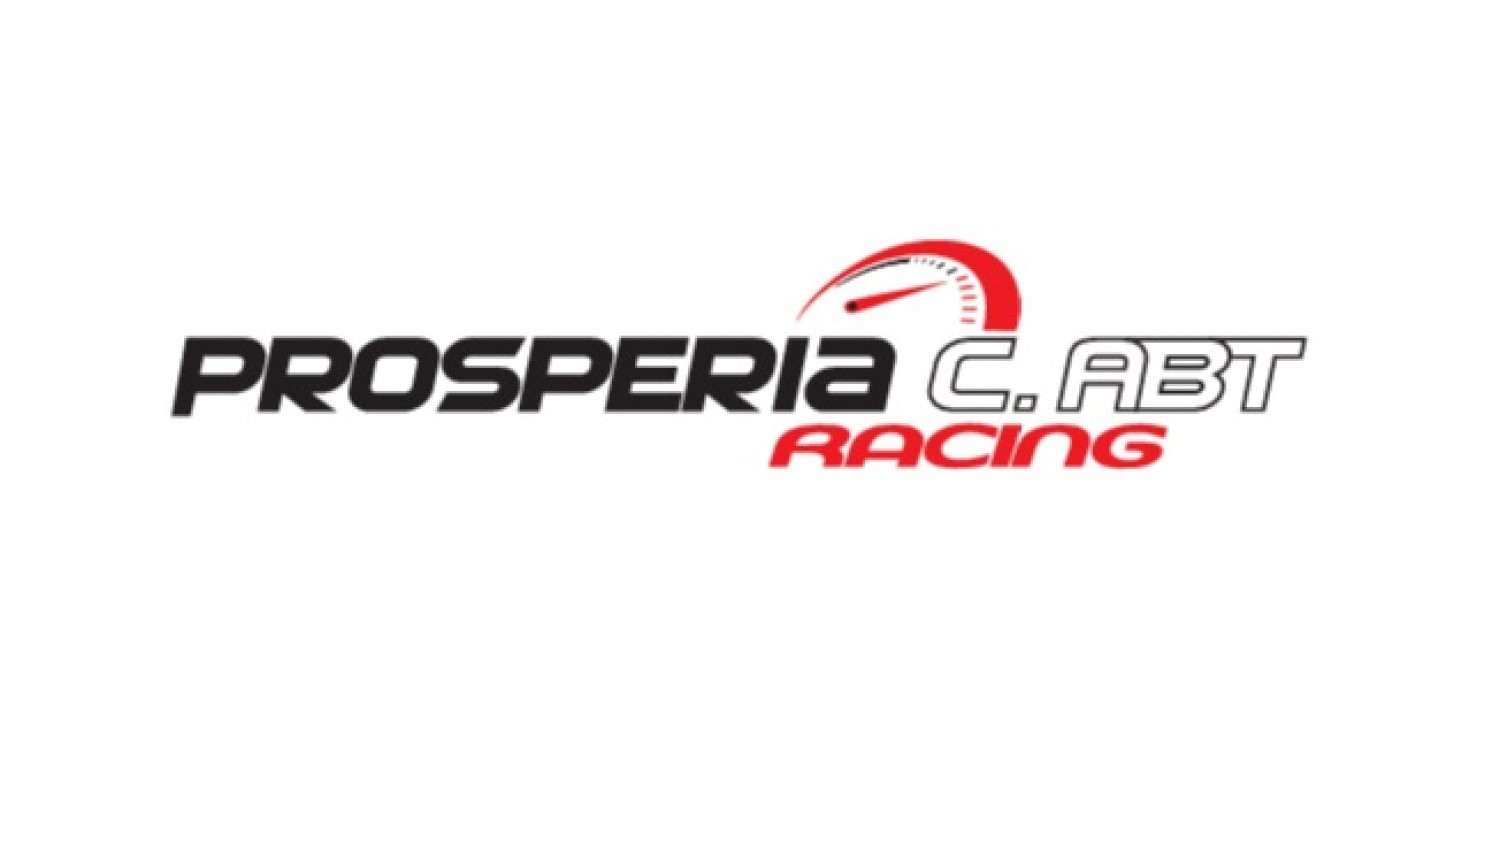 Prosperia C. Abt Racing joins Baku World Challenge